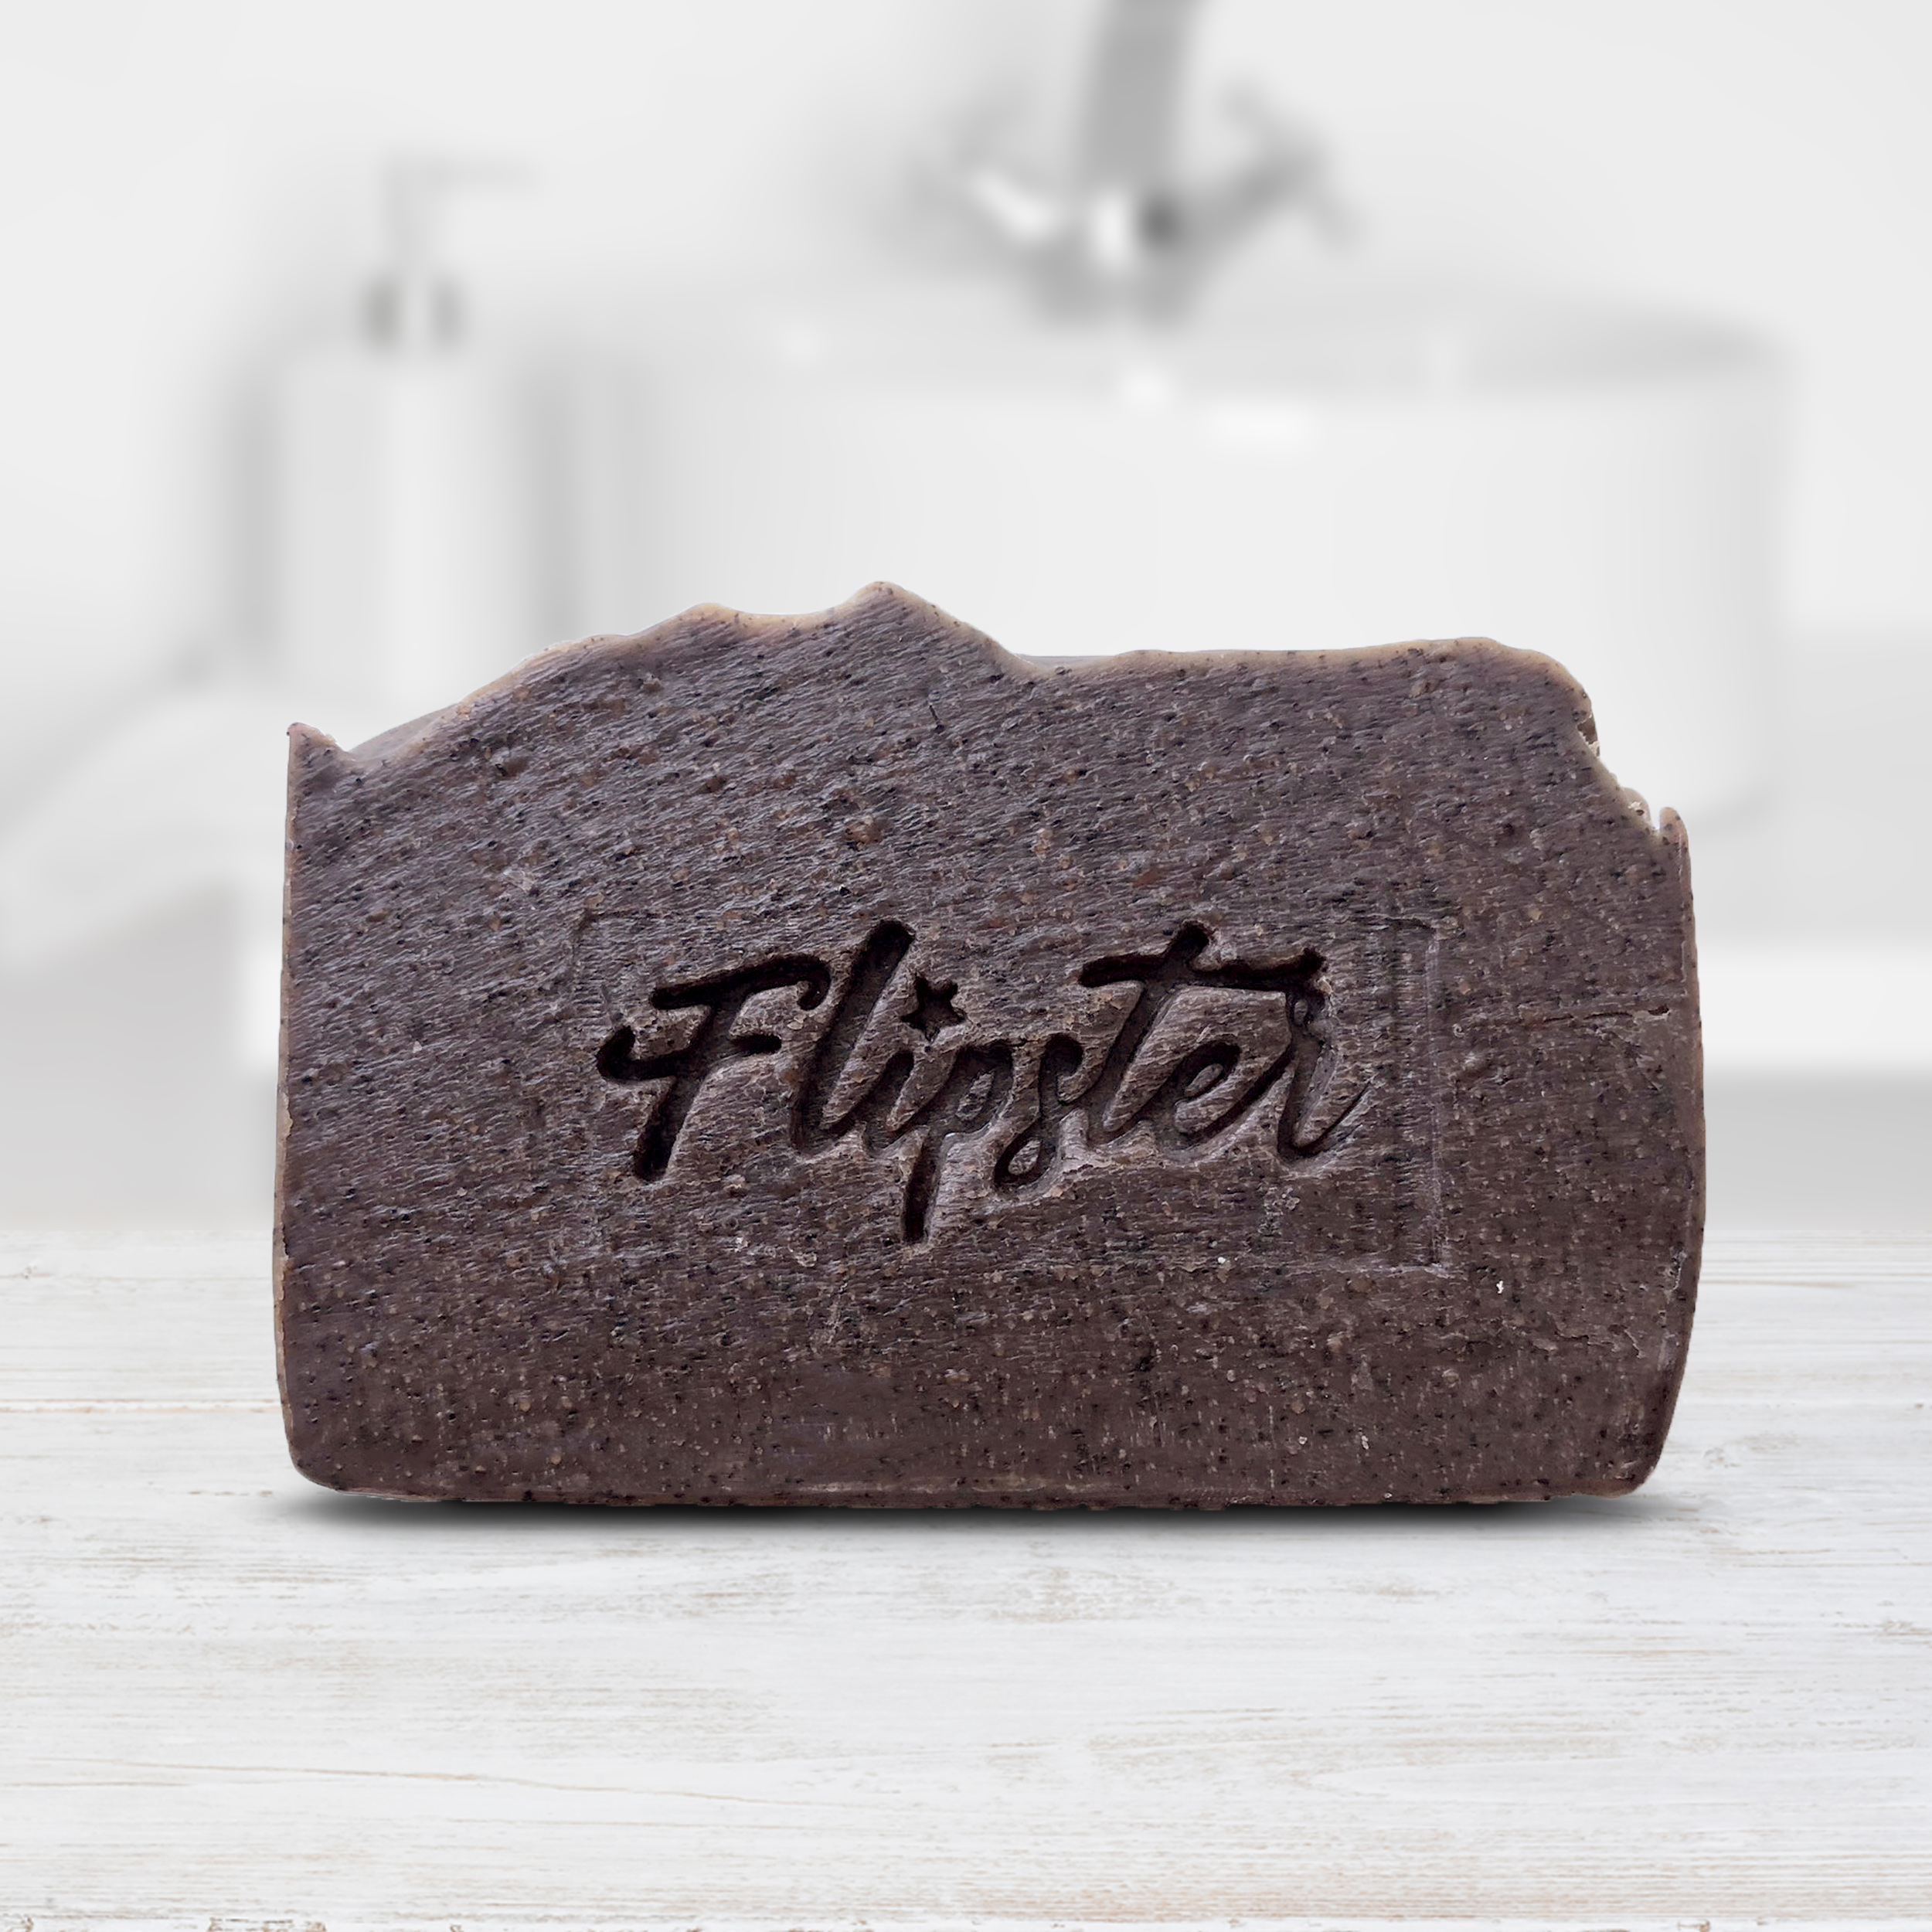 Coffee & Cocoa - Flipster Soap Scrub Bar